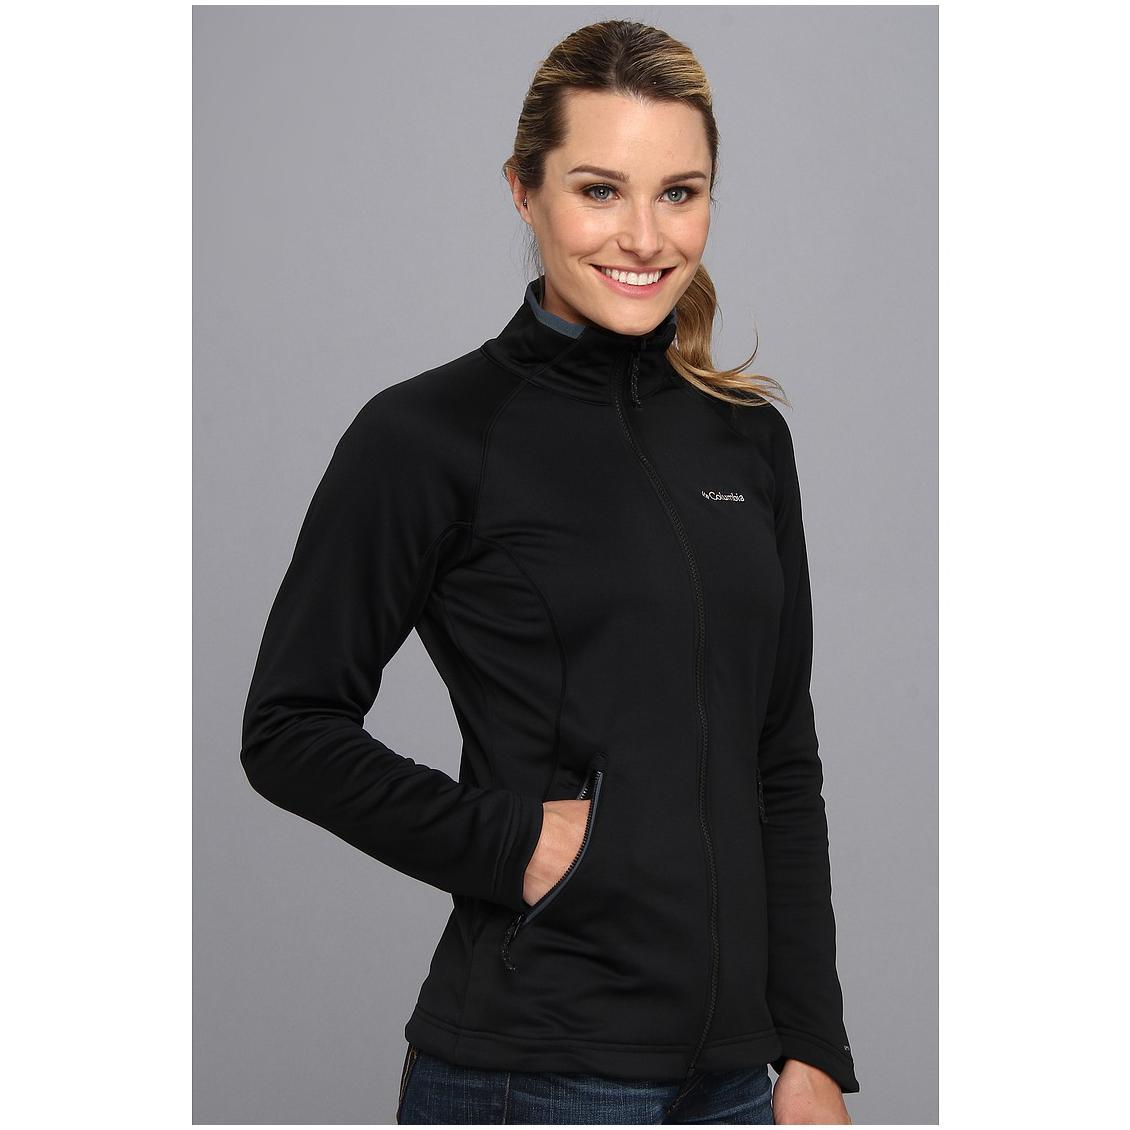 Columbia Sportswear Women's Evap-Change Fleece Jacket